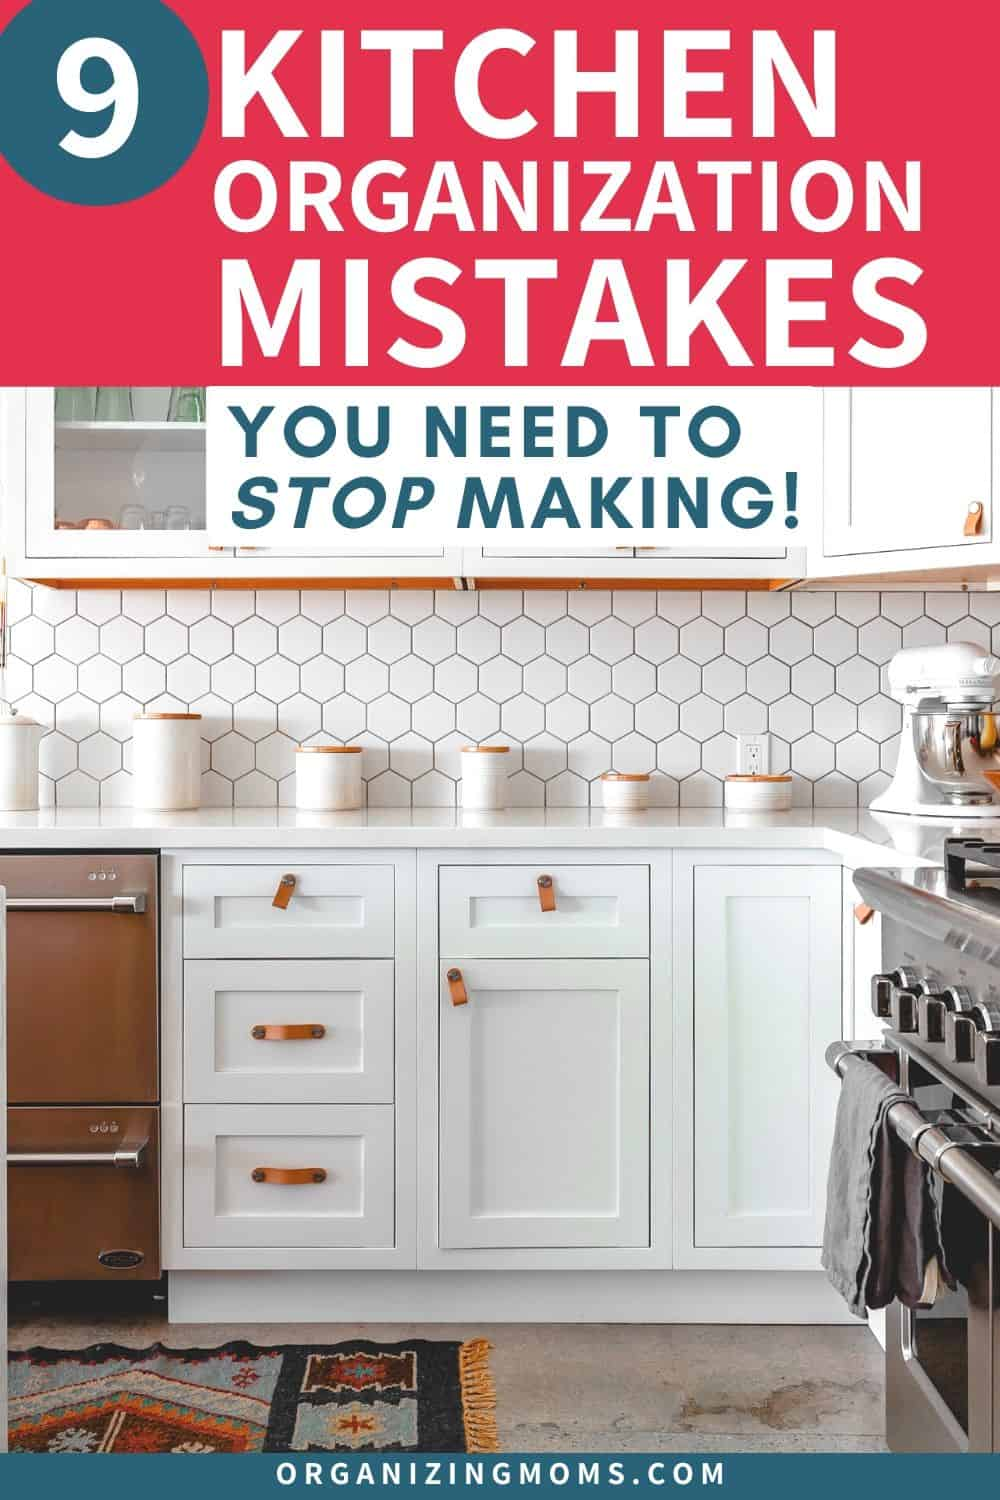 9 kitchen organization mistakes you need to stop making